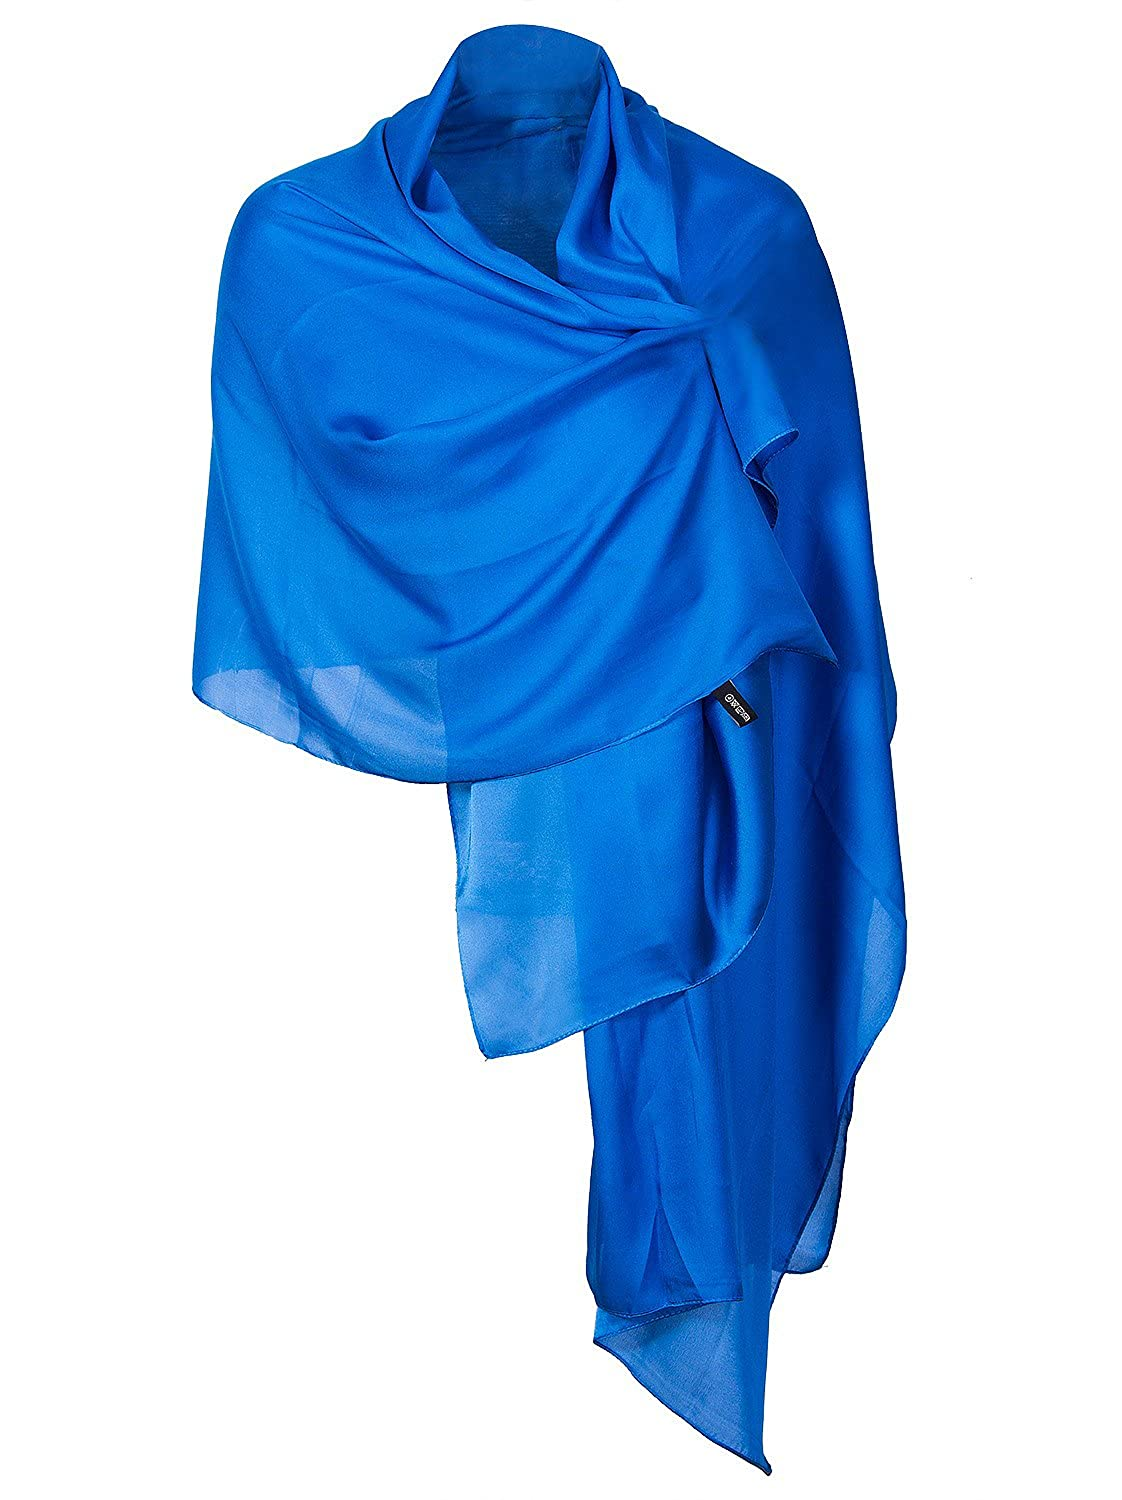 bluee Vijiv Women's 1920s Shawl Wrap Scarf For Bridal Prom Wedding Party Evening Dresses 70.8